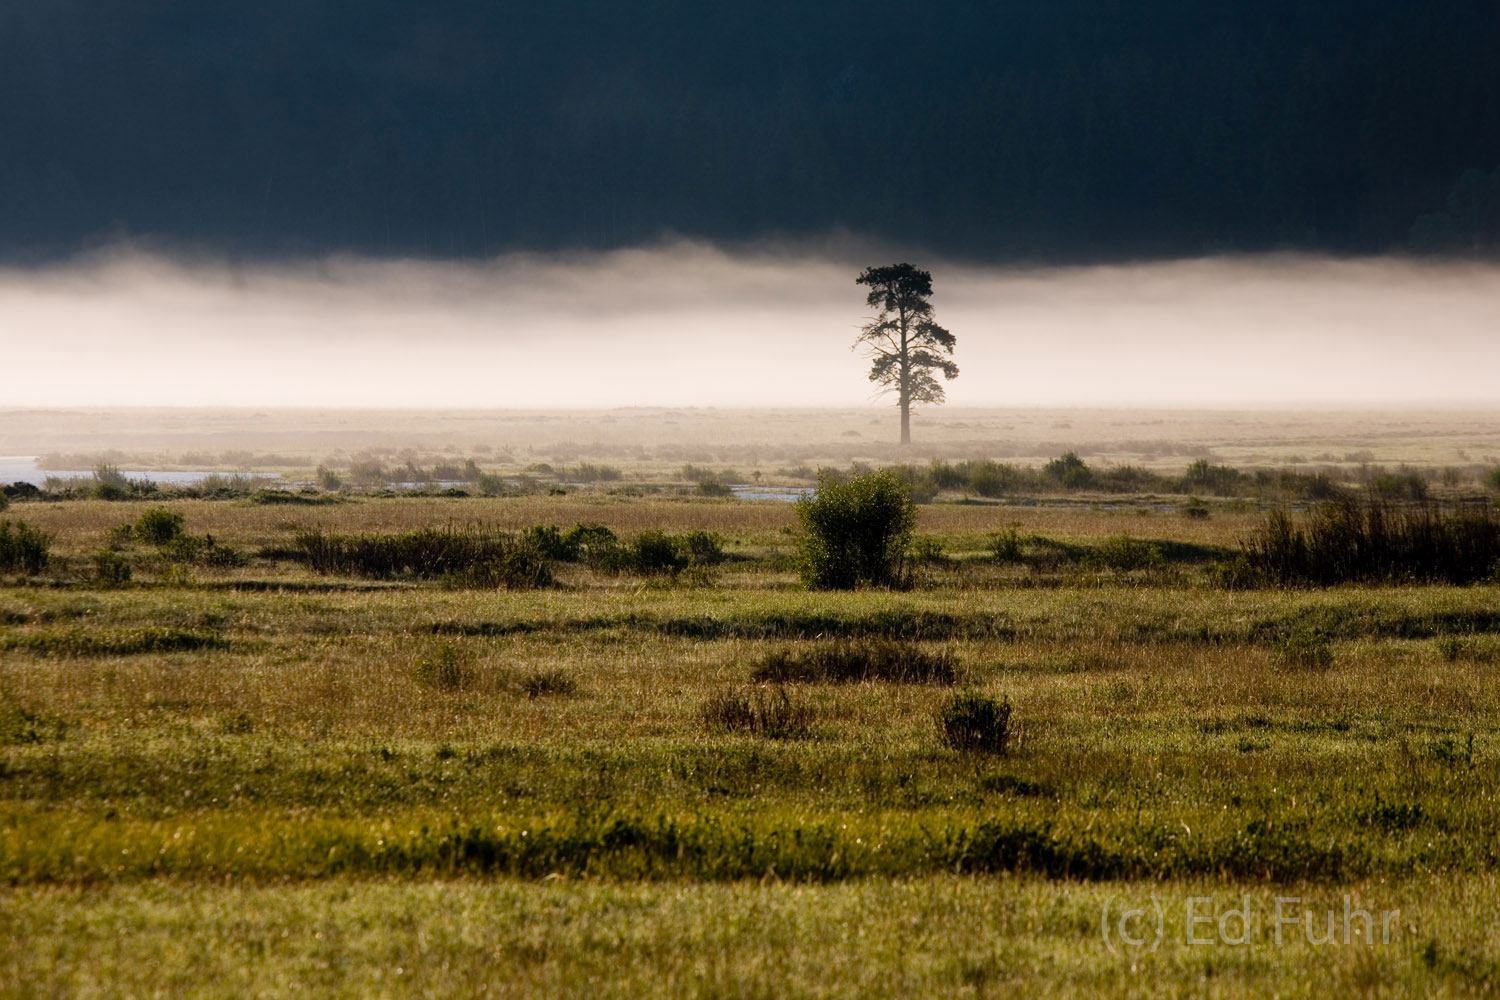 A lone tree rises through the fog bank over the Lamar River.